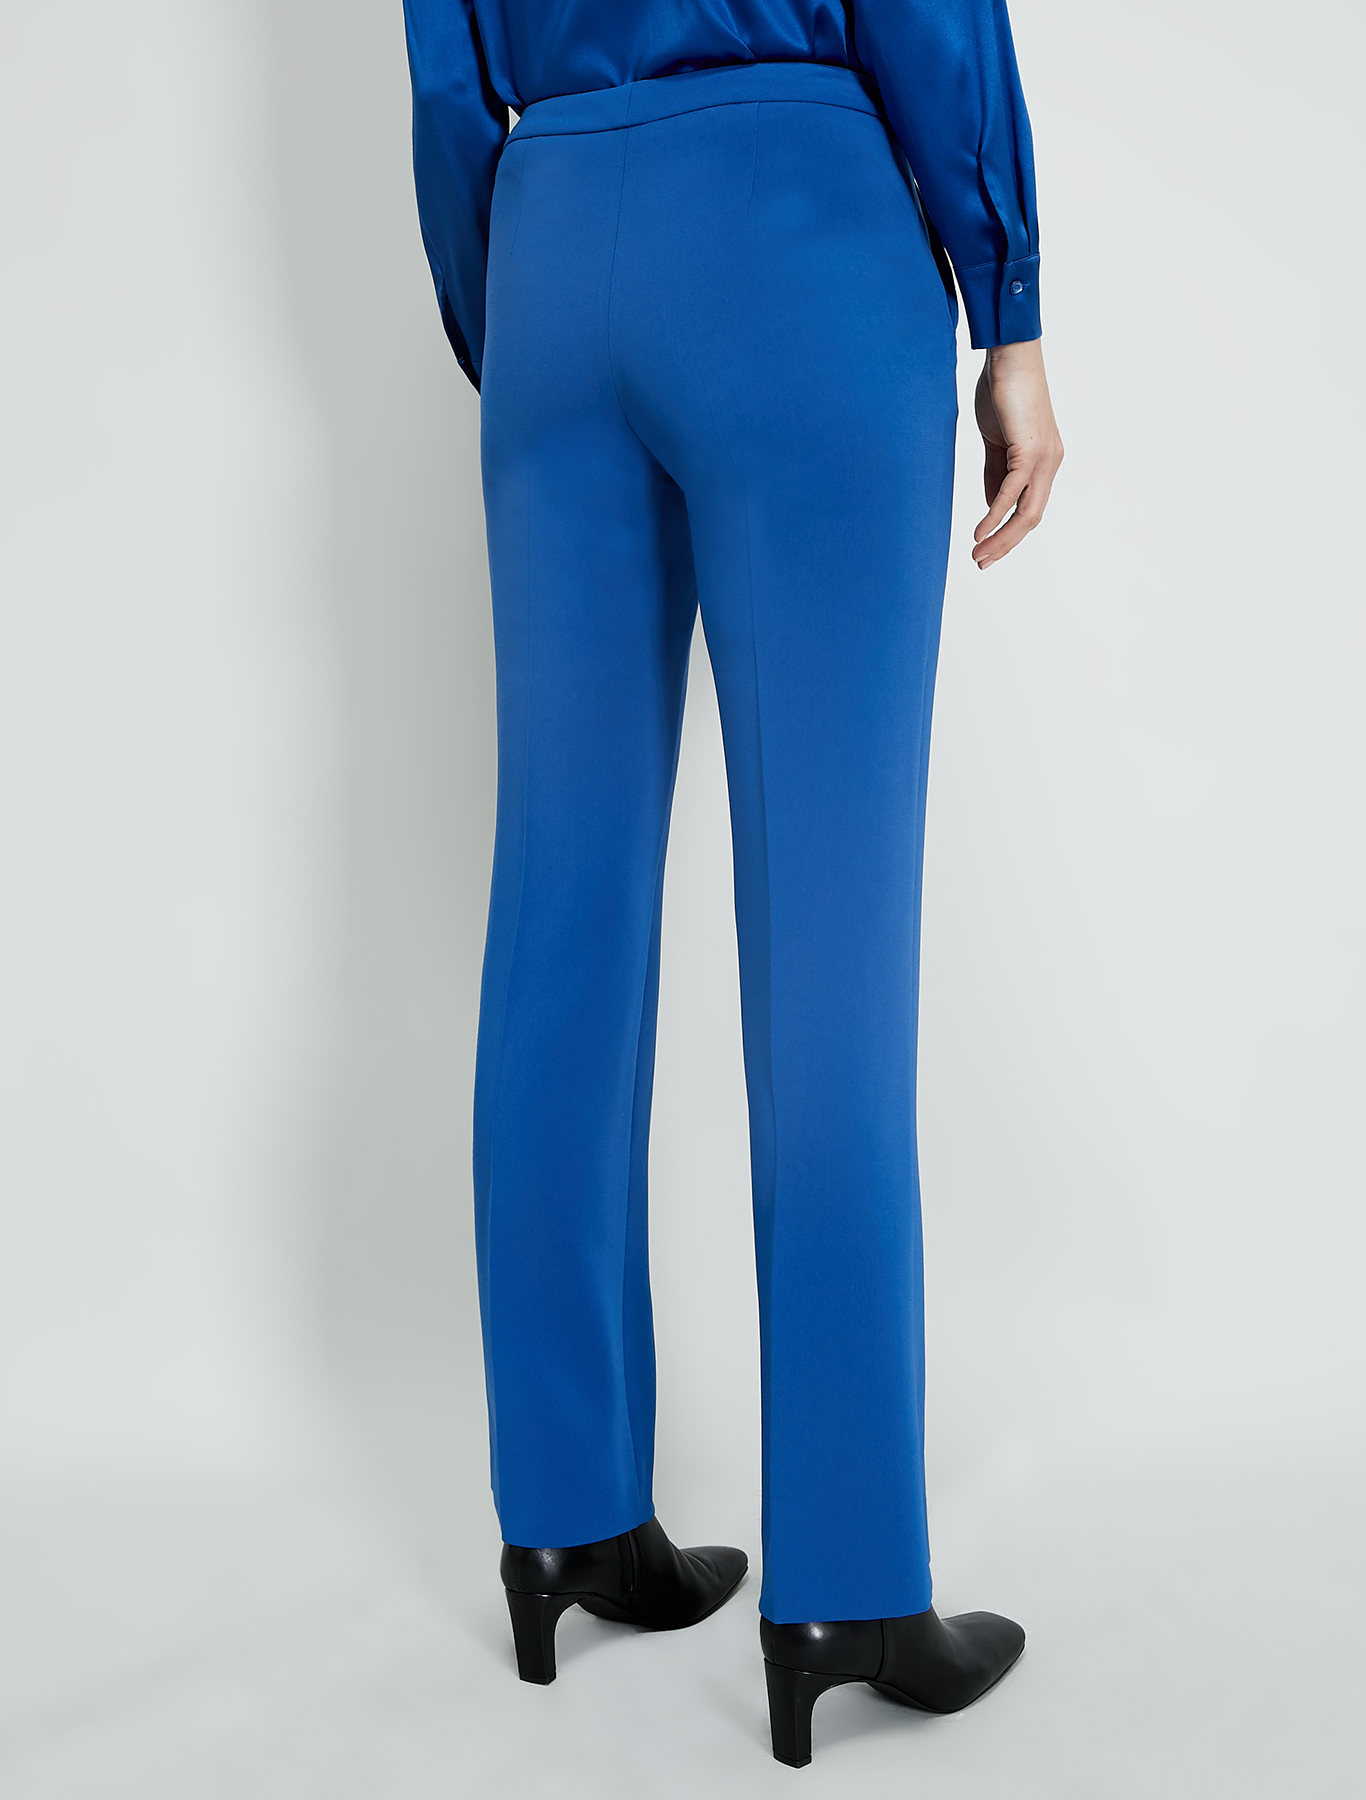 Straight-fit trousers - air force blue - pennyblack